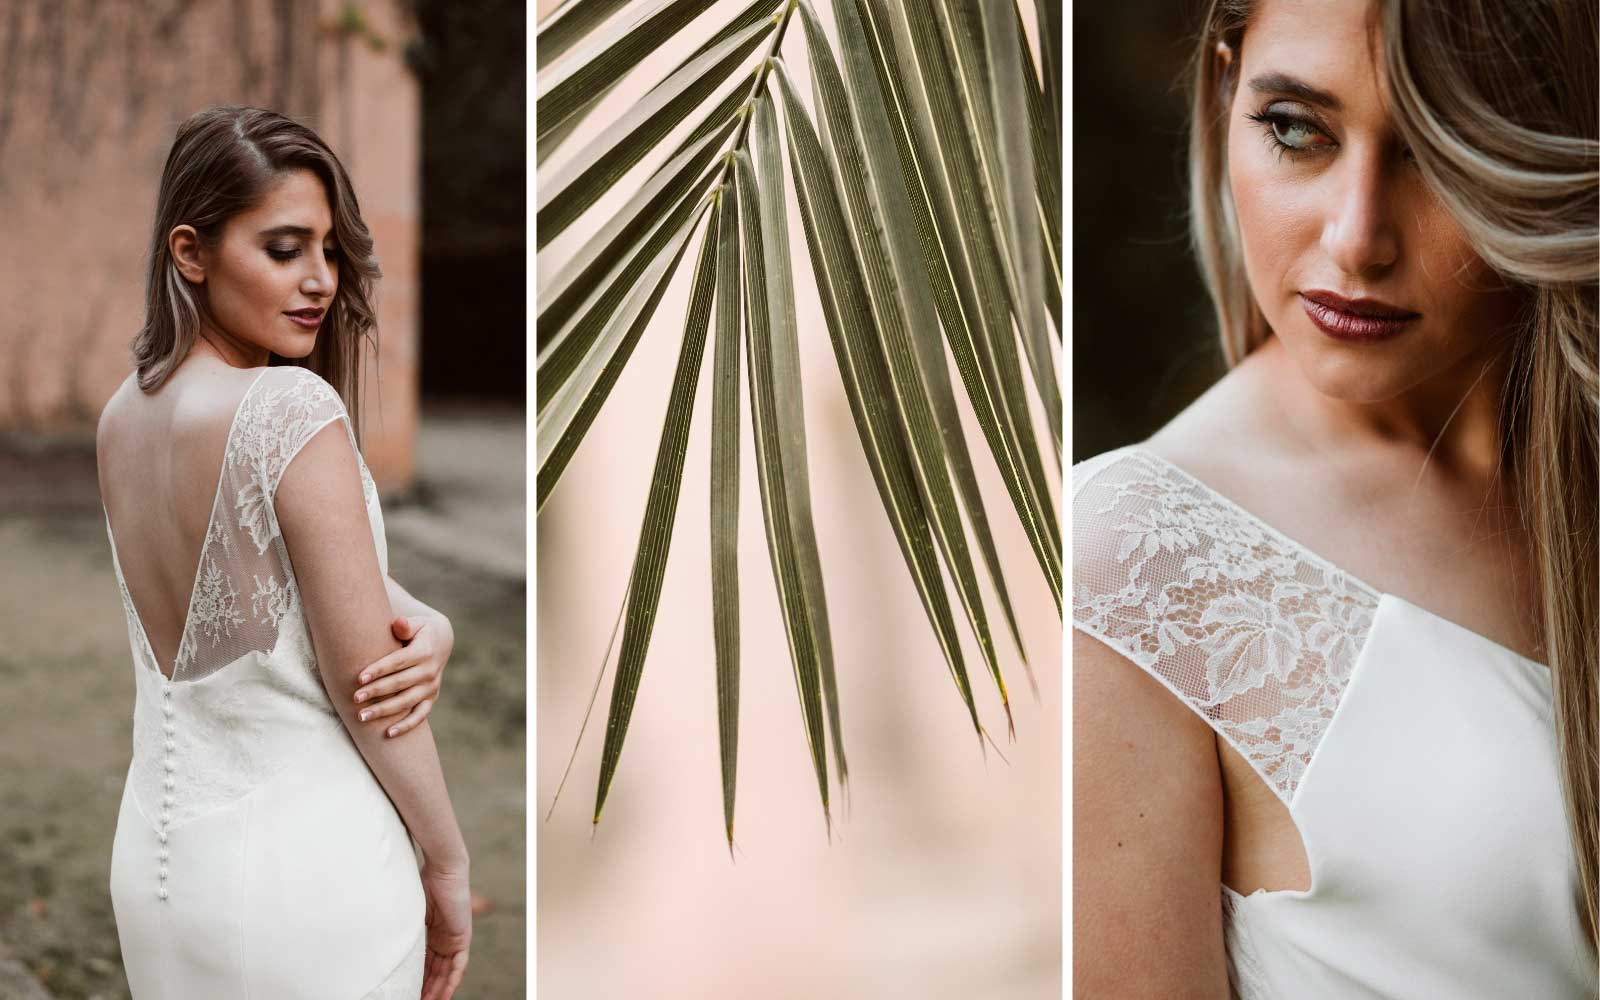 Bridal editorial Barcelona | Wedding Photographer Natalia Wisniewska